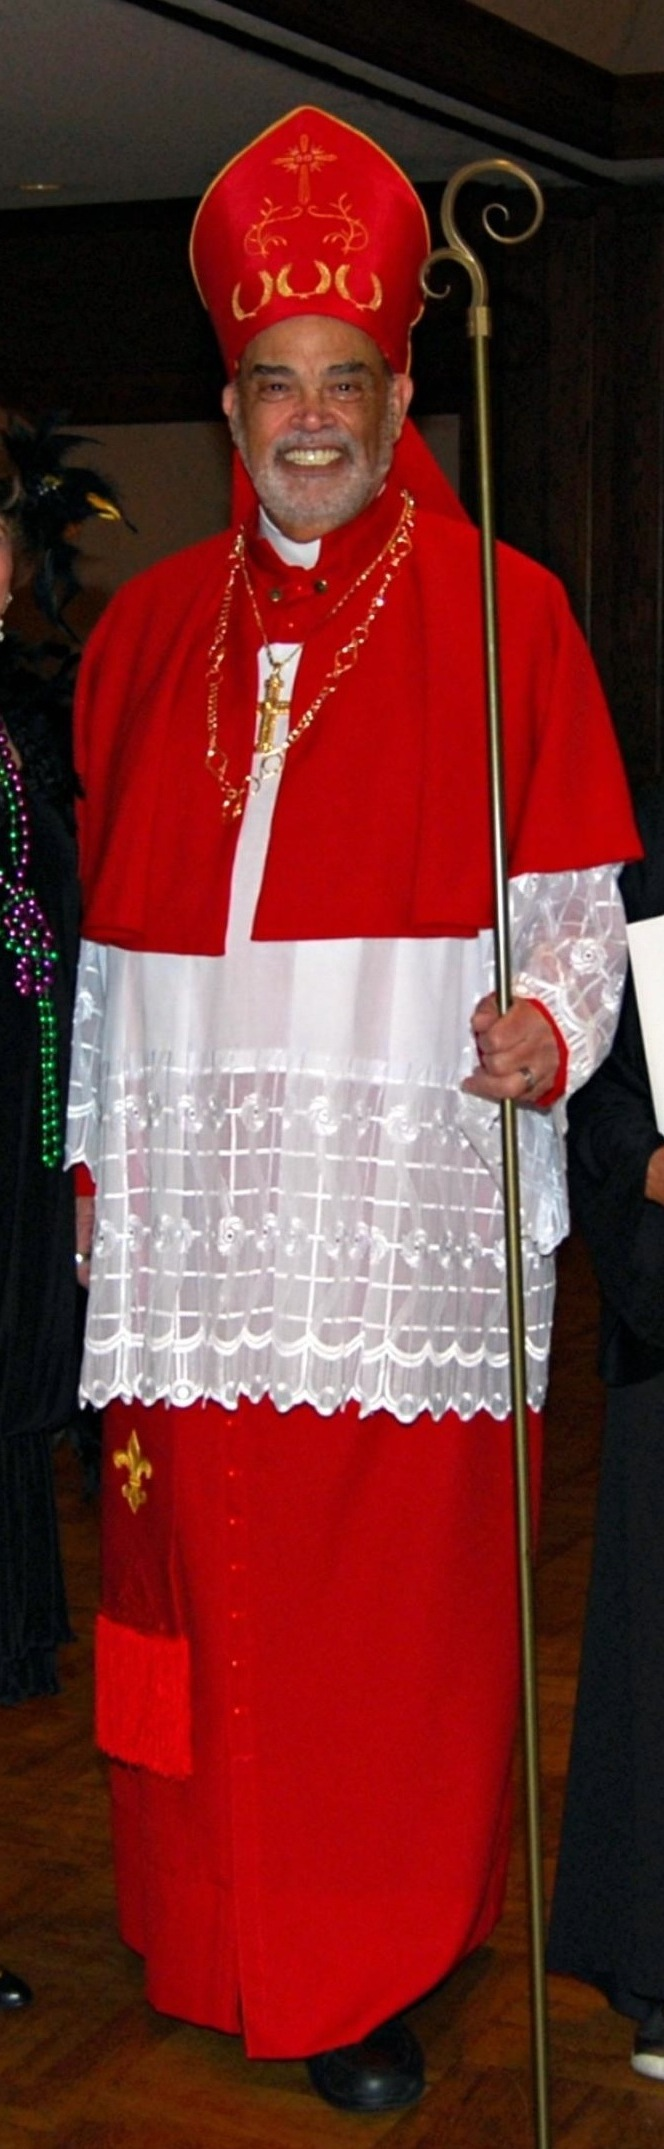 The Cardinal- giseleperez